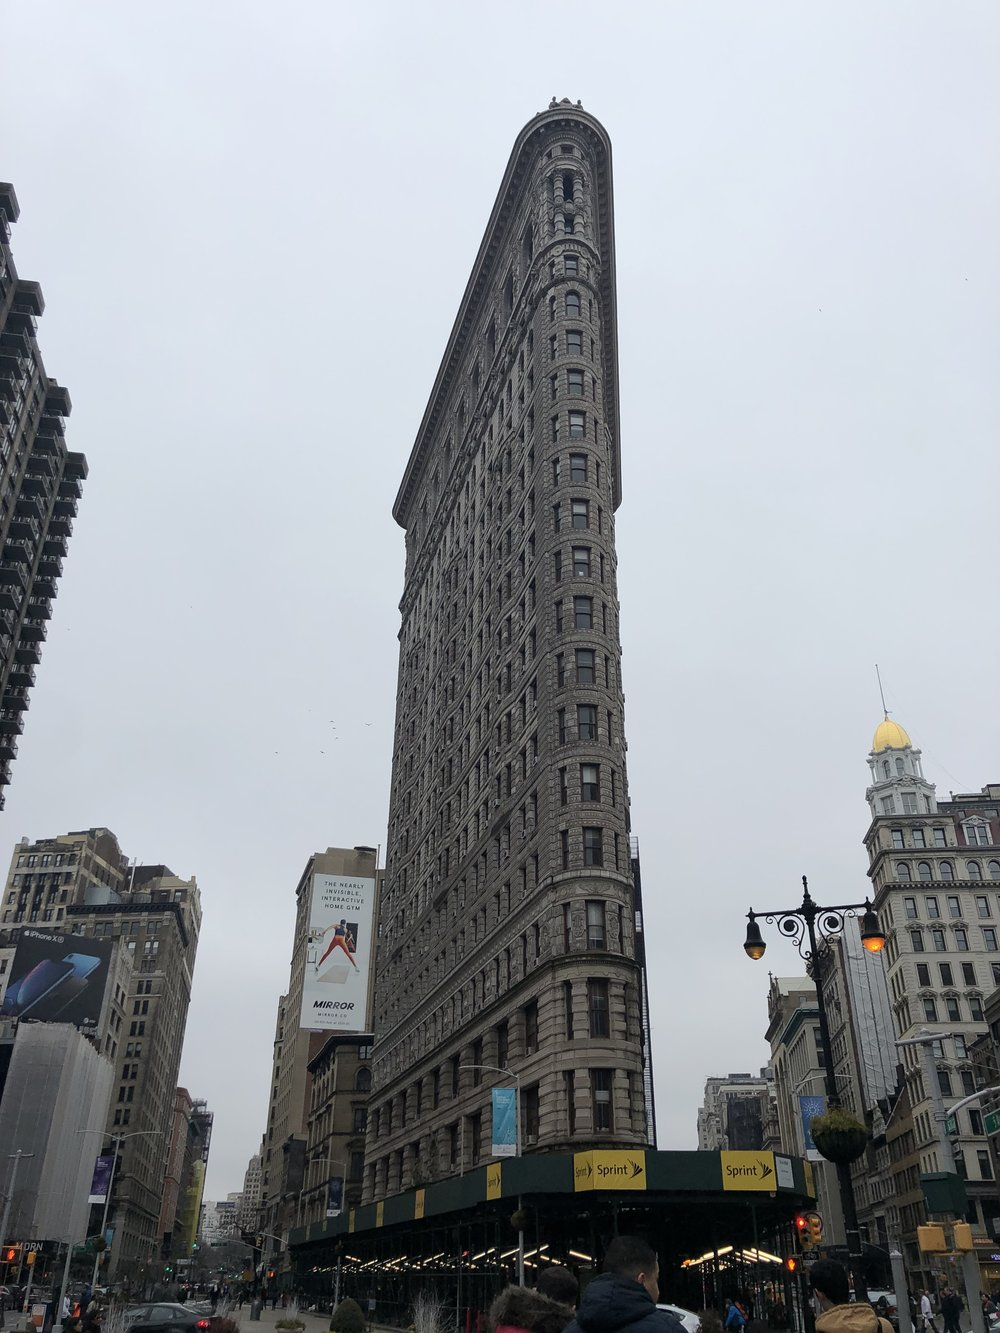 The Flatiron Building